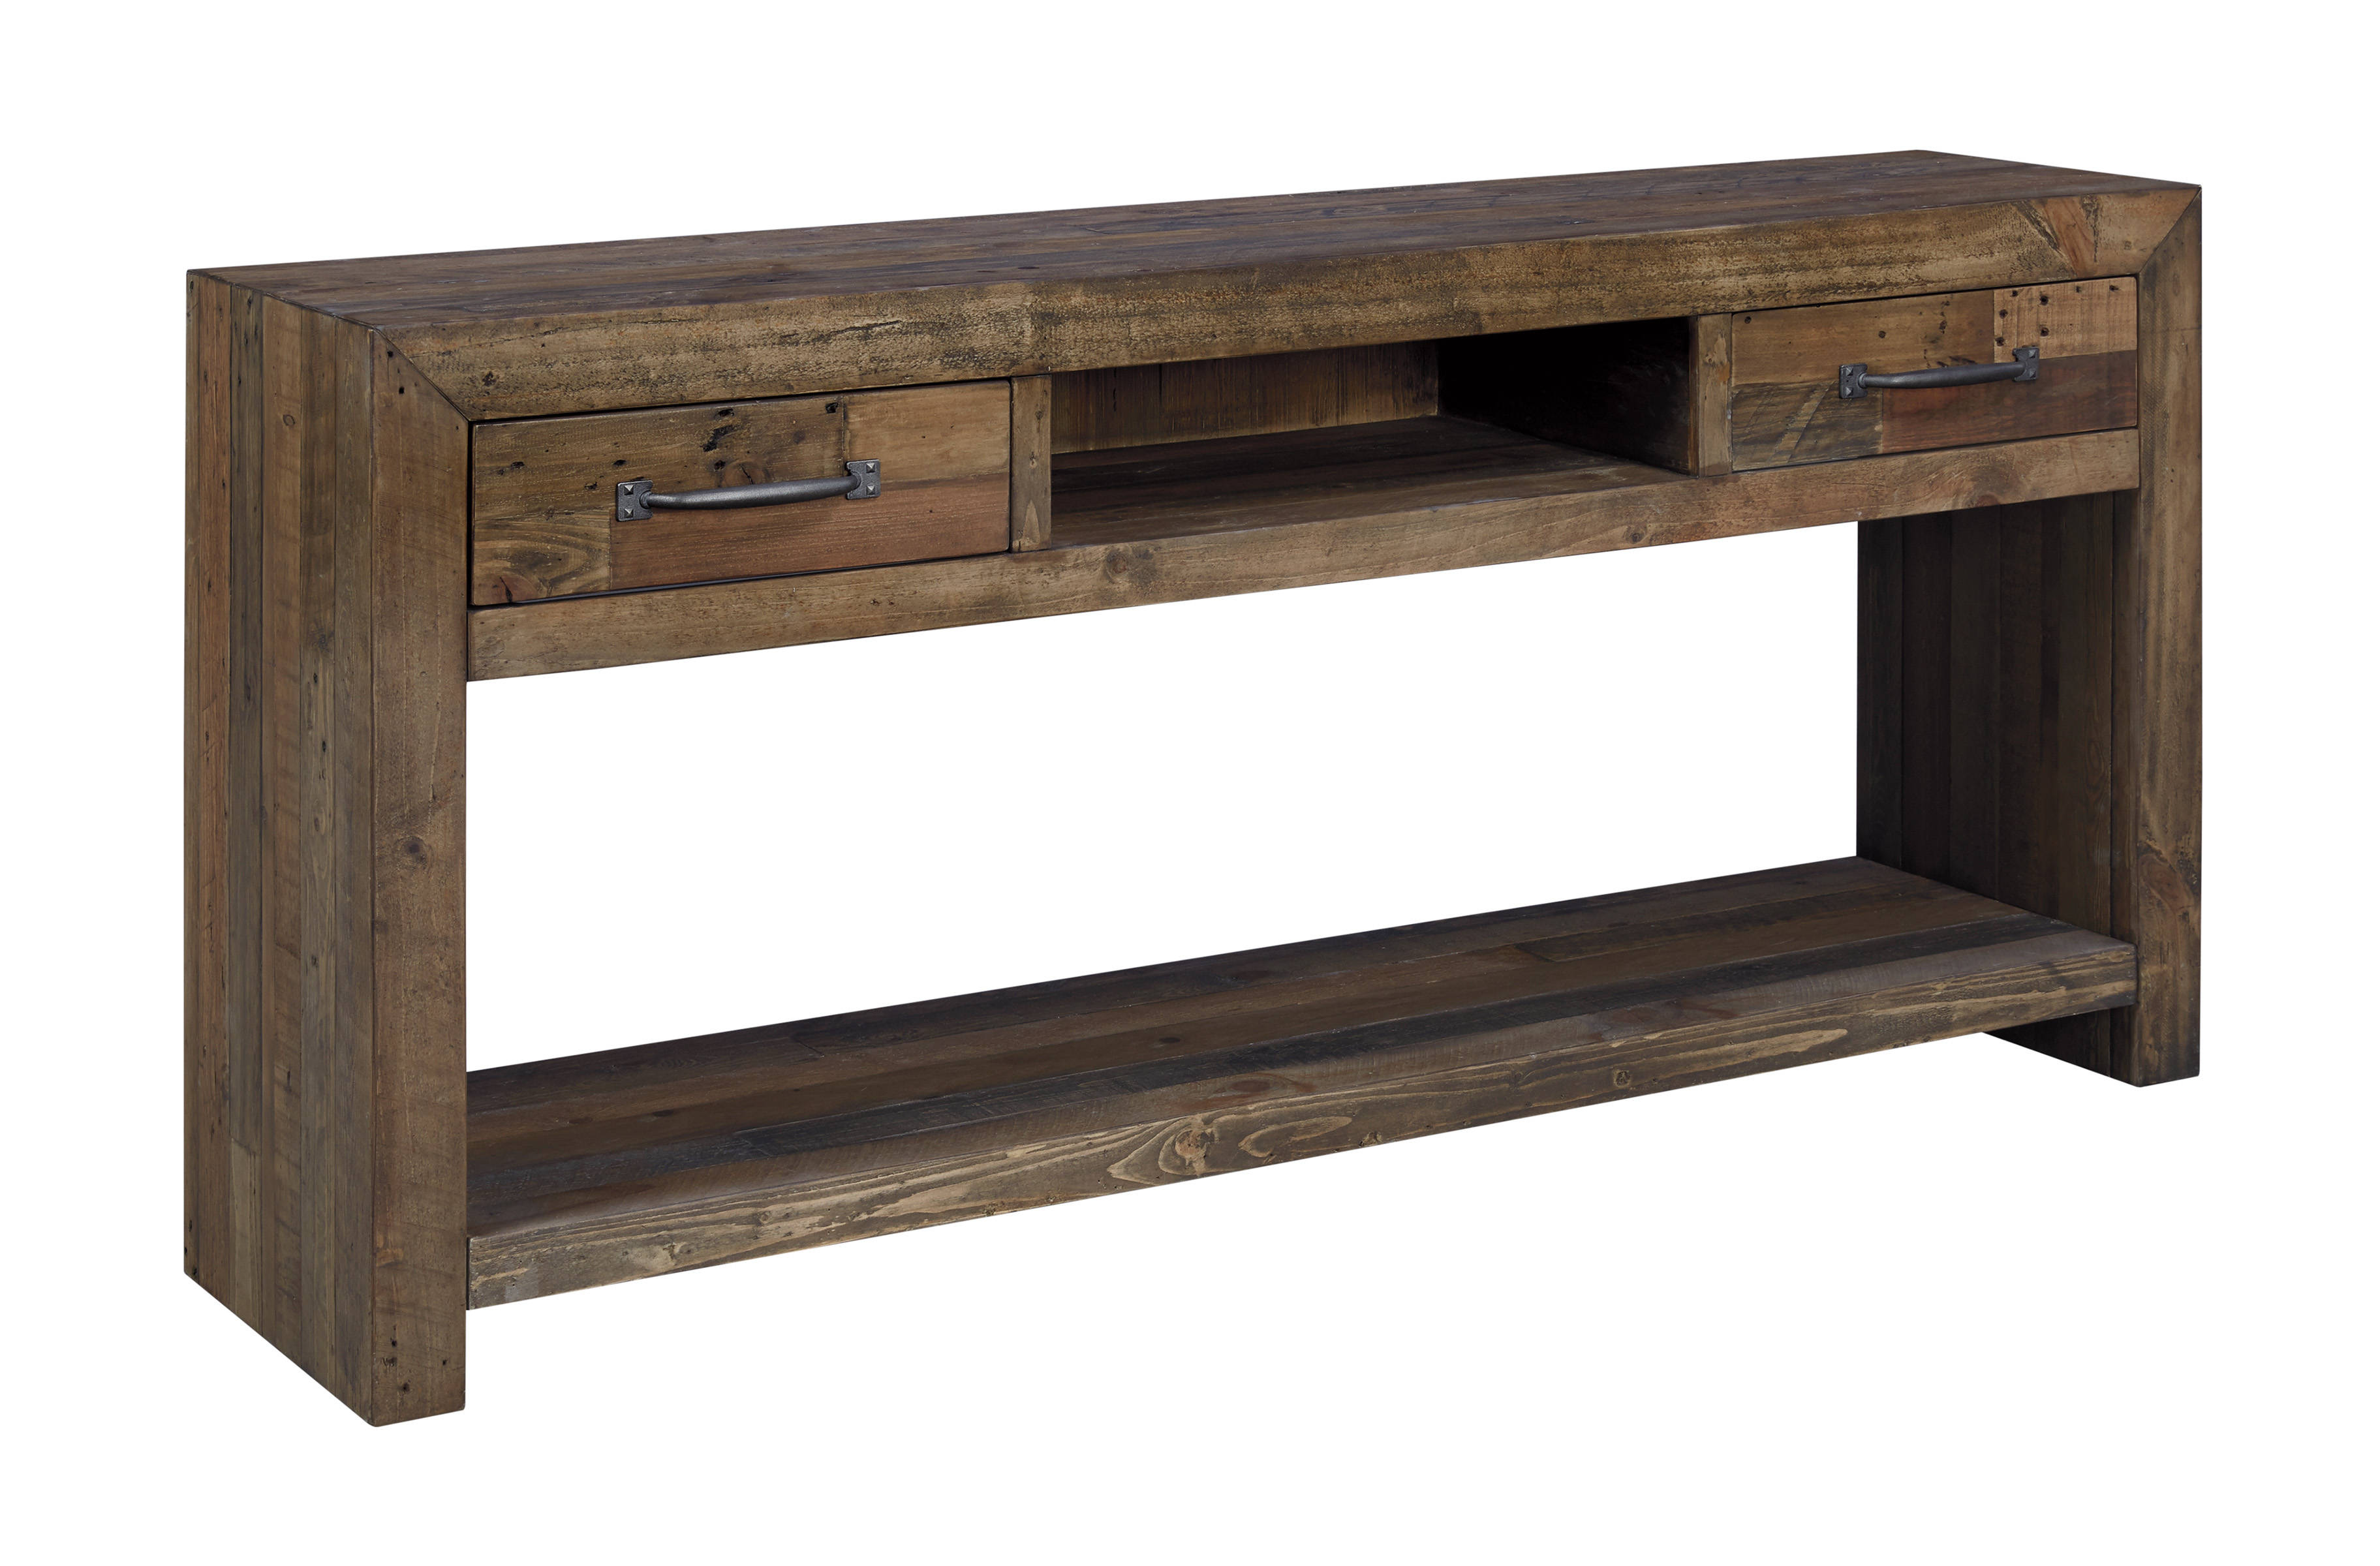 Ashley Furniture Sommerford Sofa Table The Classy Home